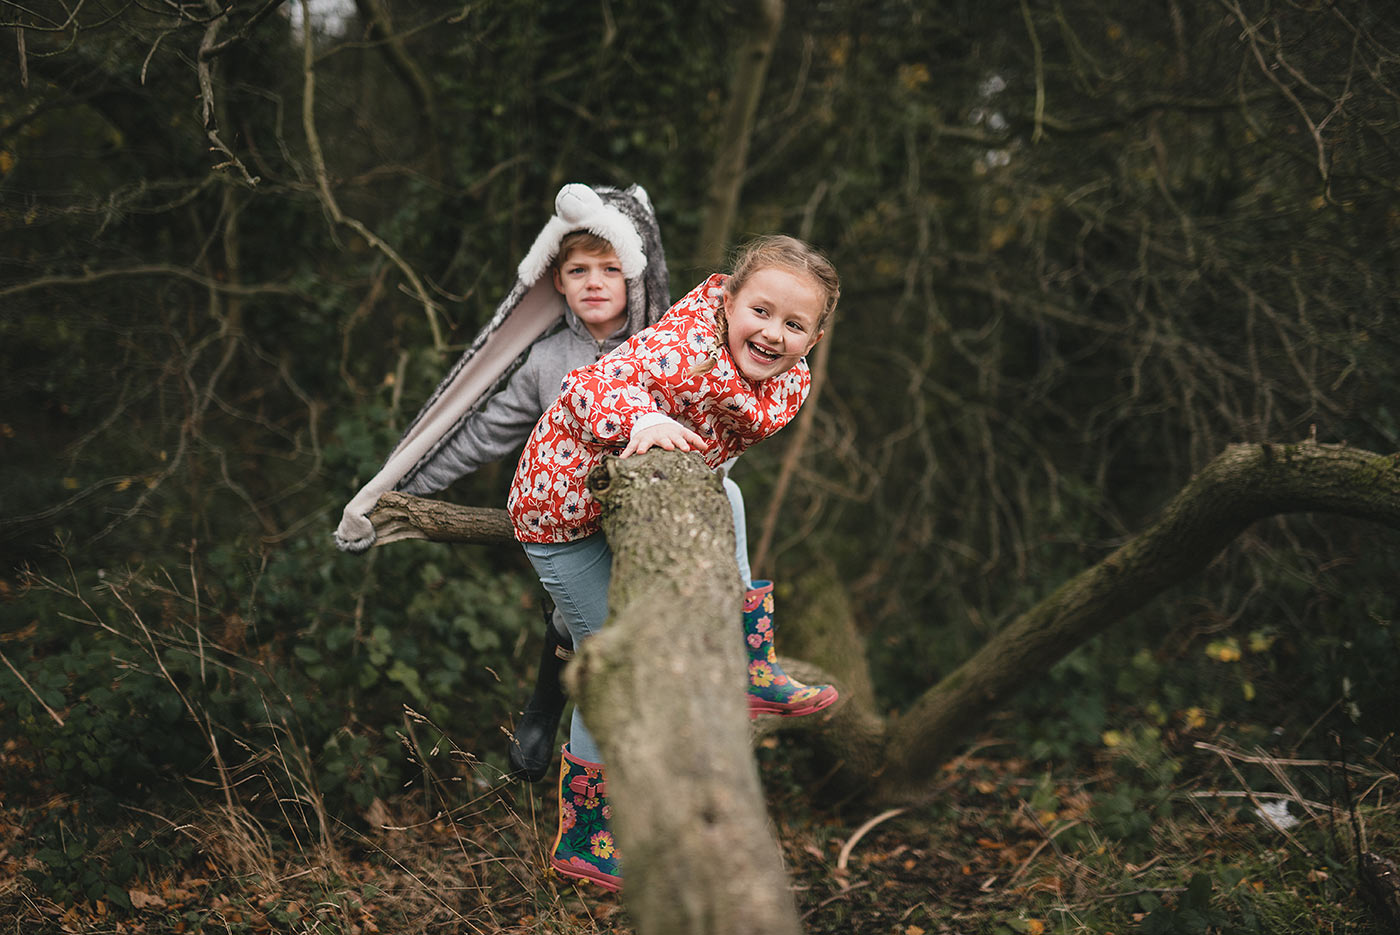 weelsby woods photoshoot grimsby portrait photographer lincolnshire based